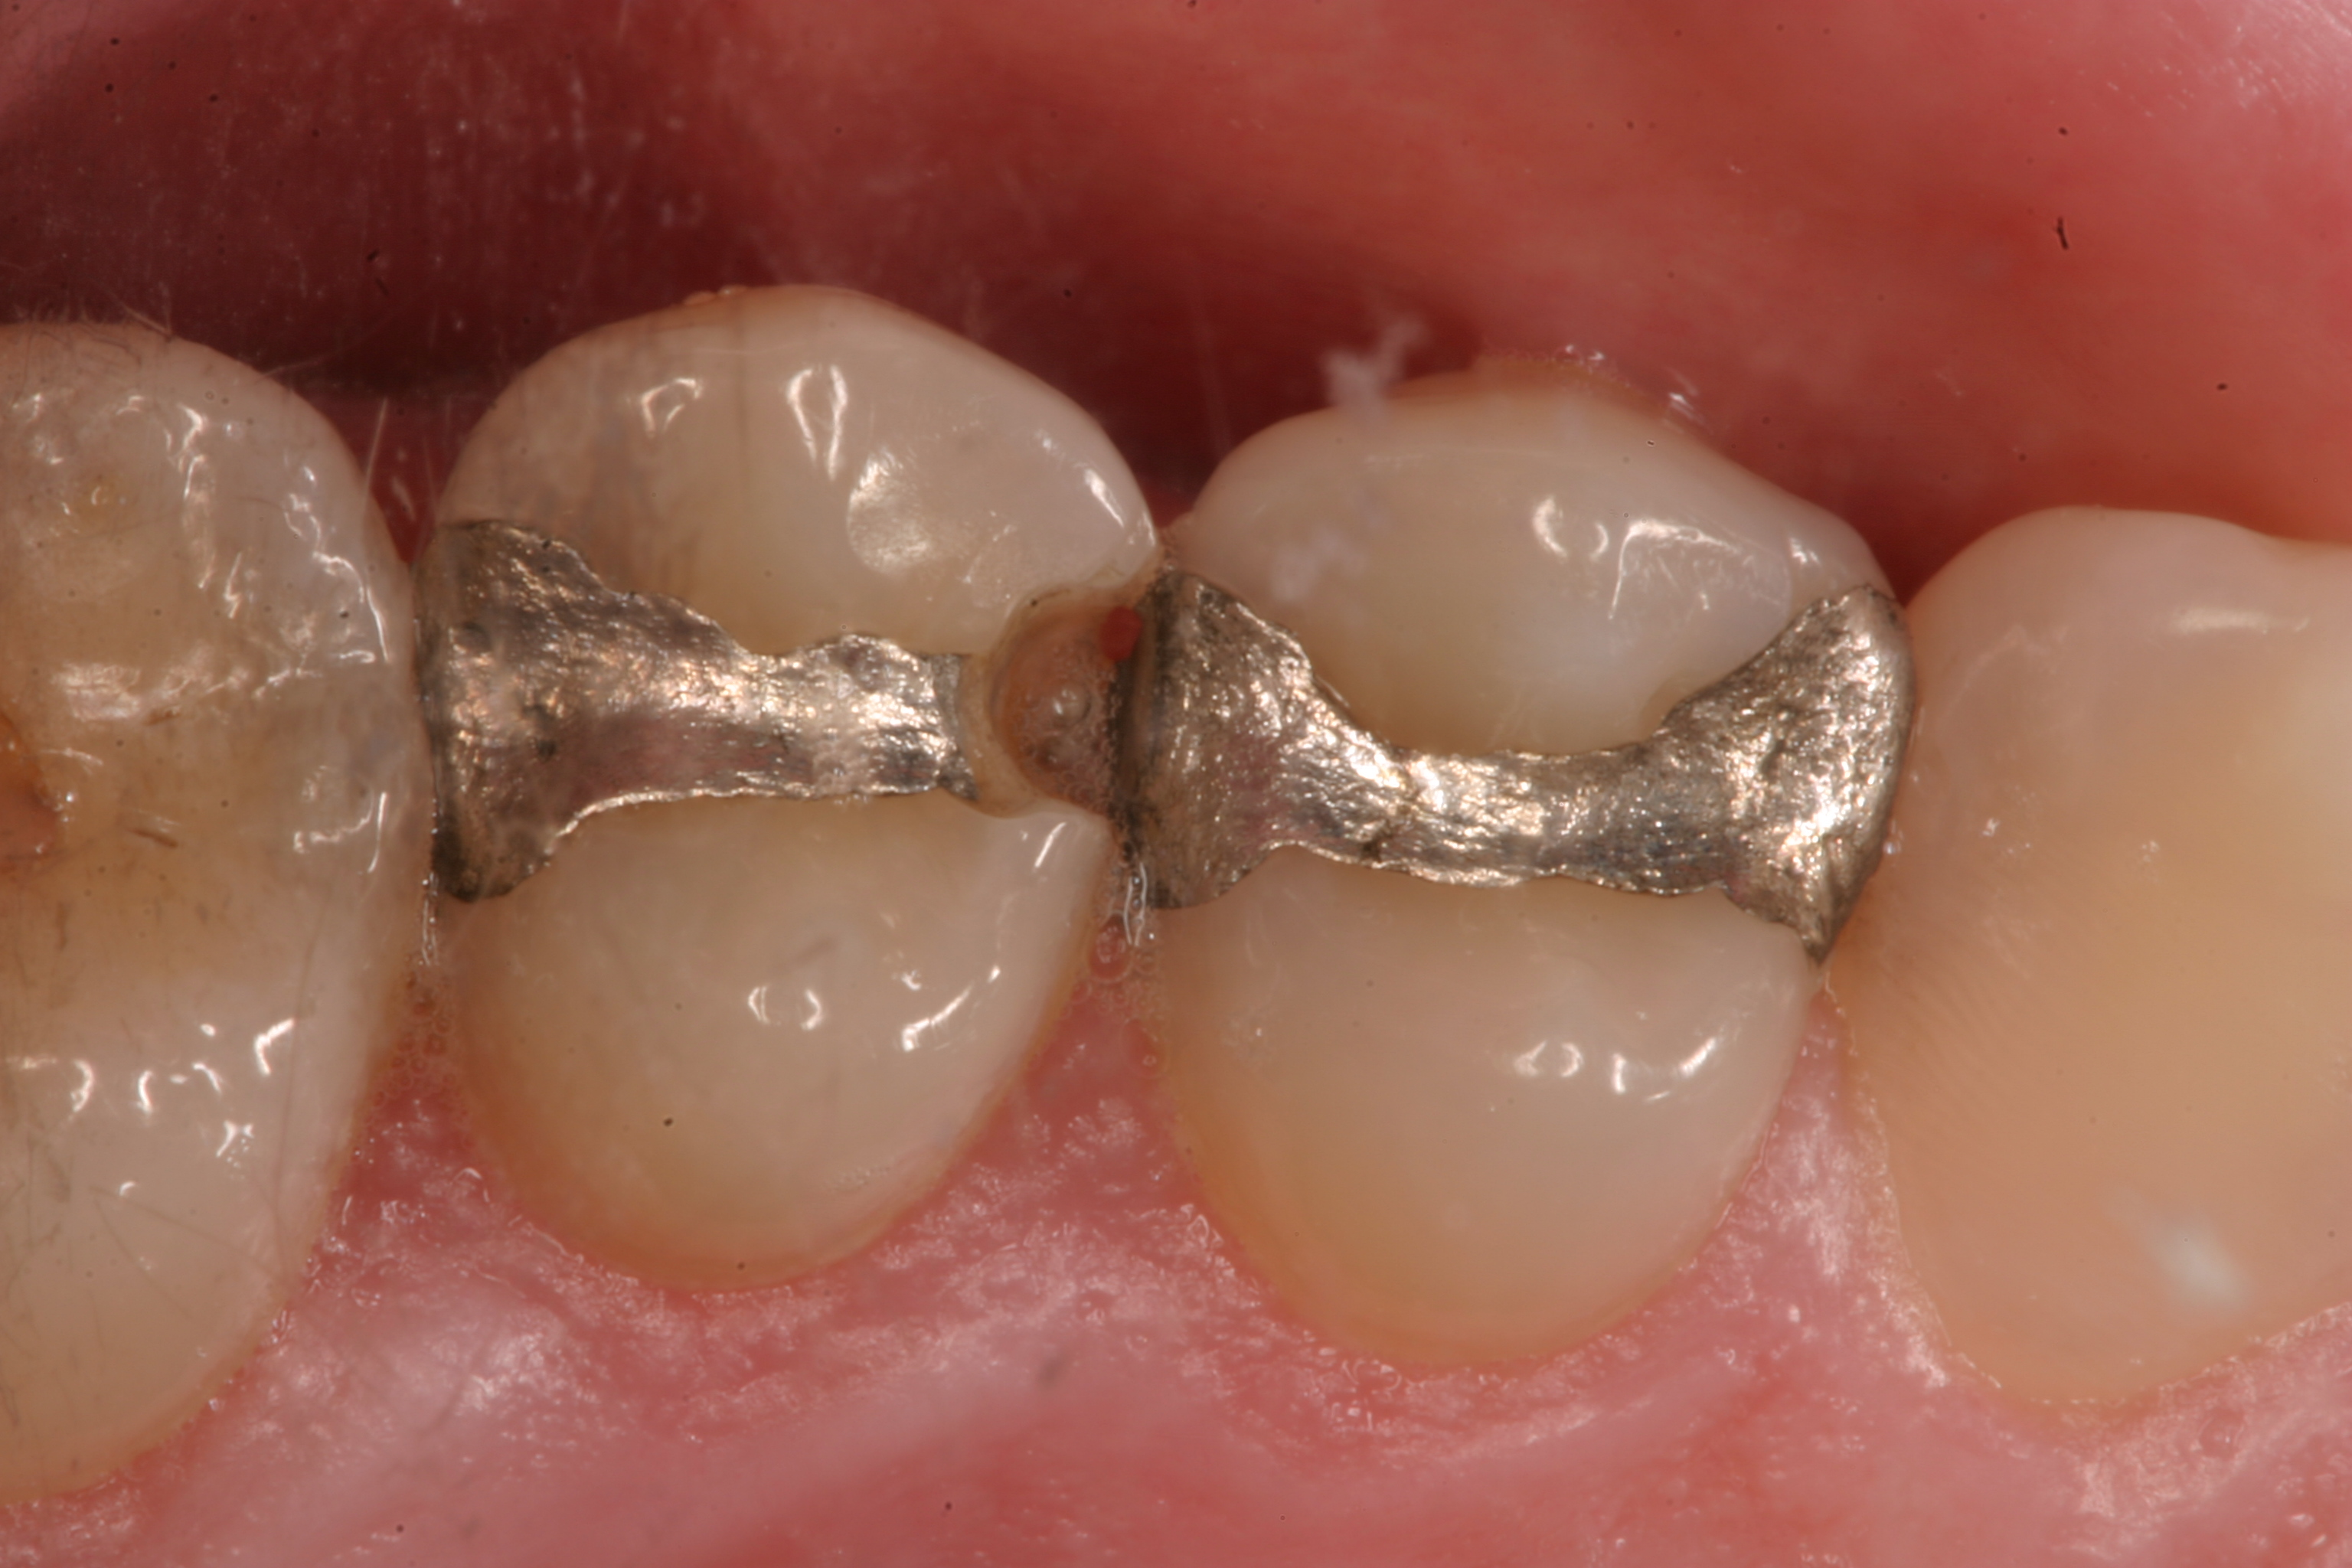 crack on tooth filling